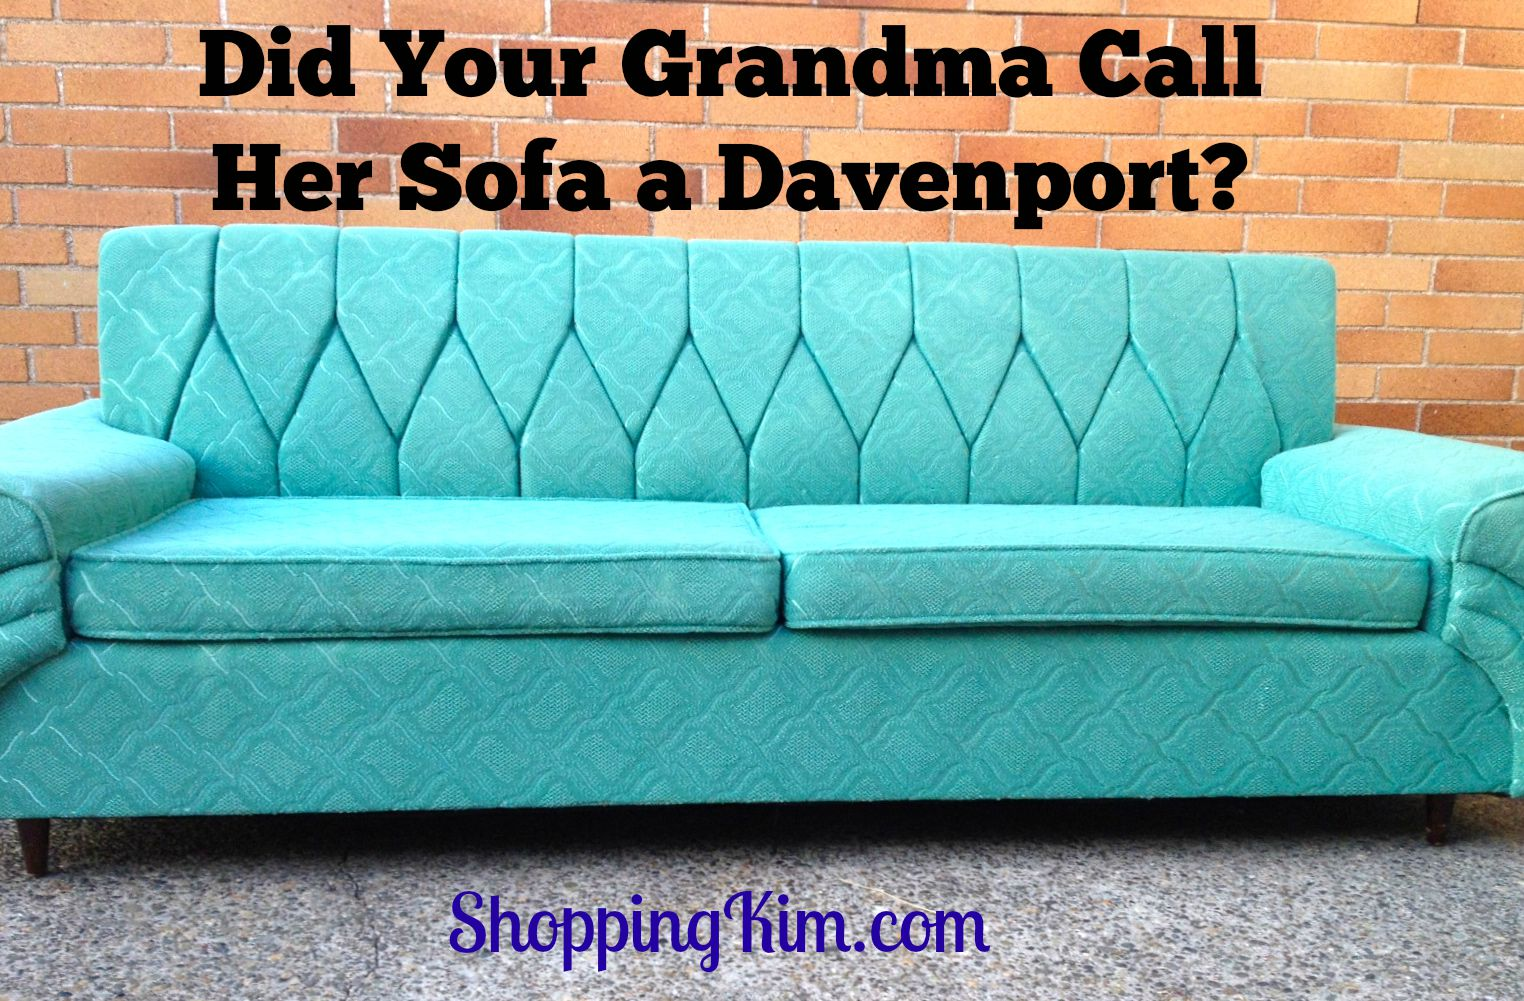 Did Your Grandma Own A Davenport?